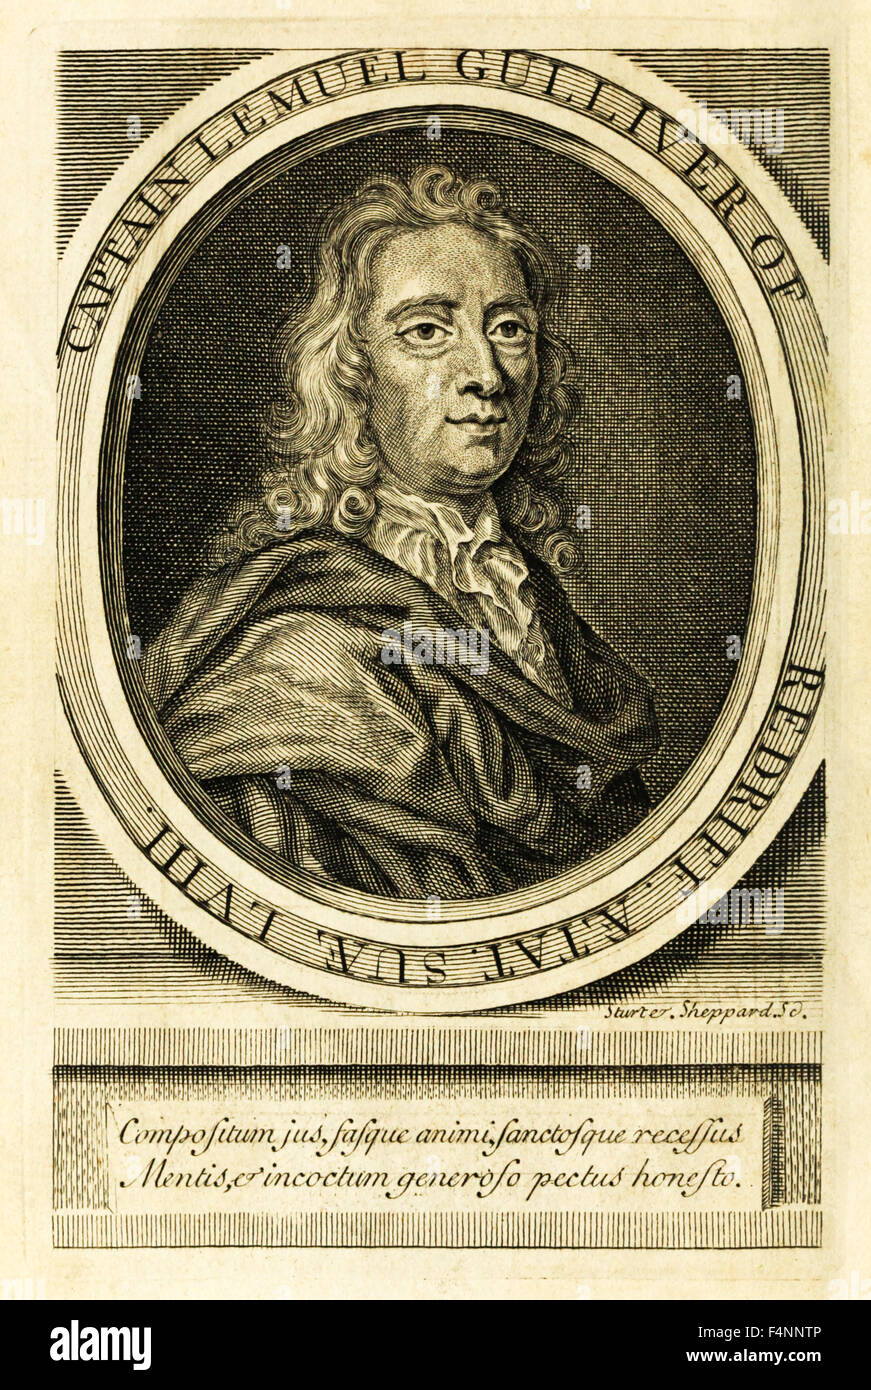 Frontispiece portrait of Captain Lemuel Gulliver from 'Travels into Several Remote Nations of the World' - Stock Image